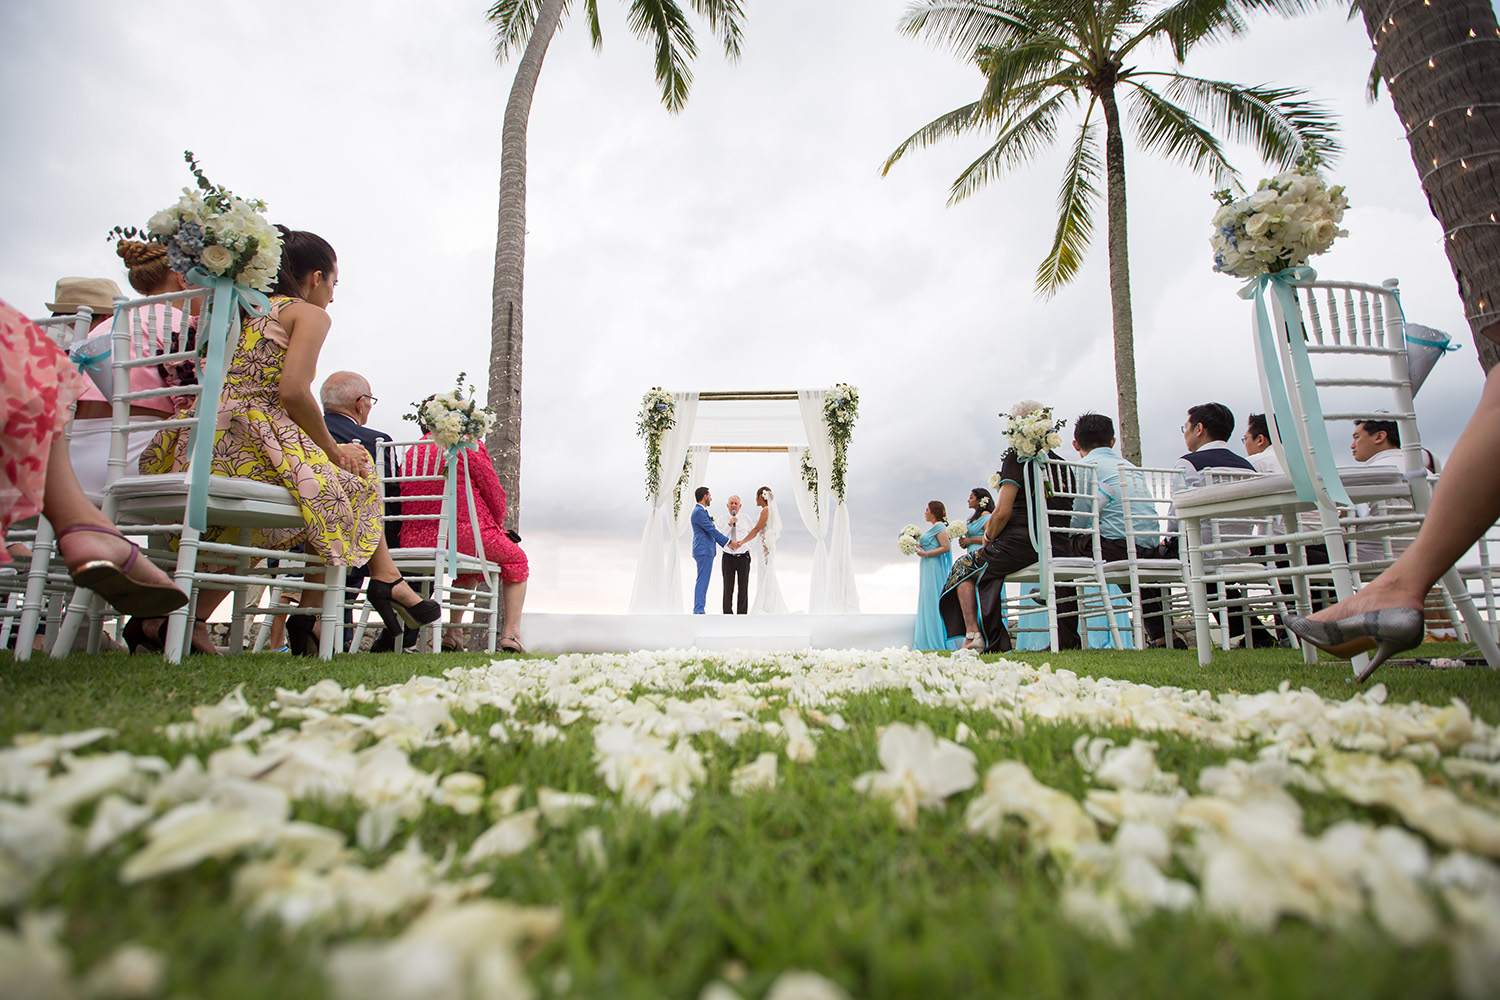 Wedding Shanti at Jivana Villas Phuket,Thailand